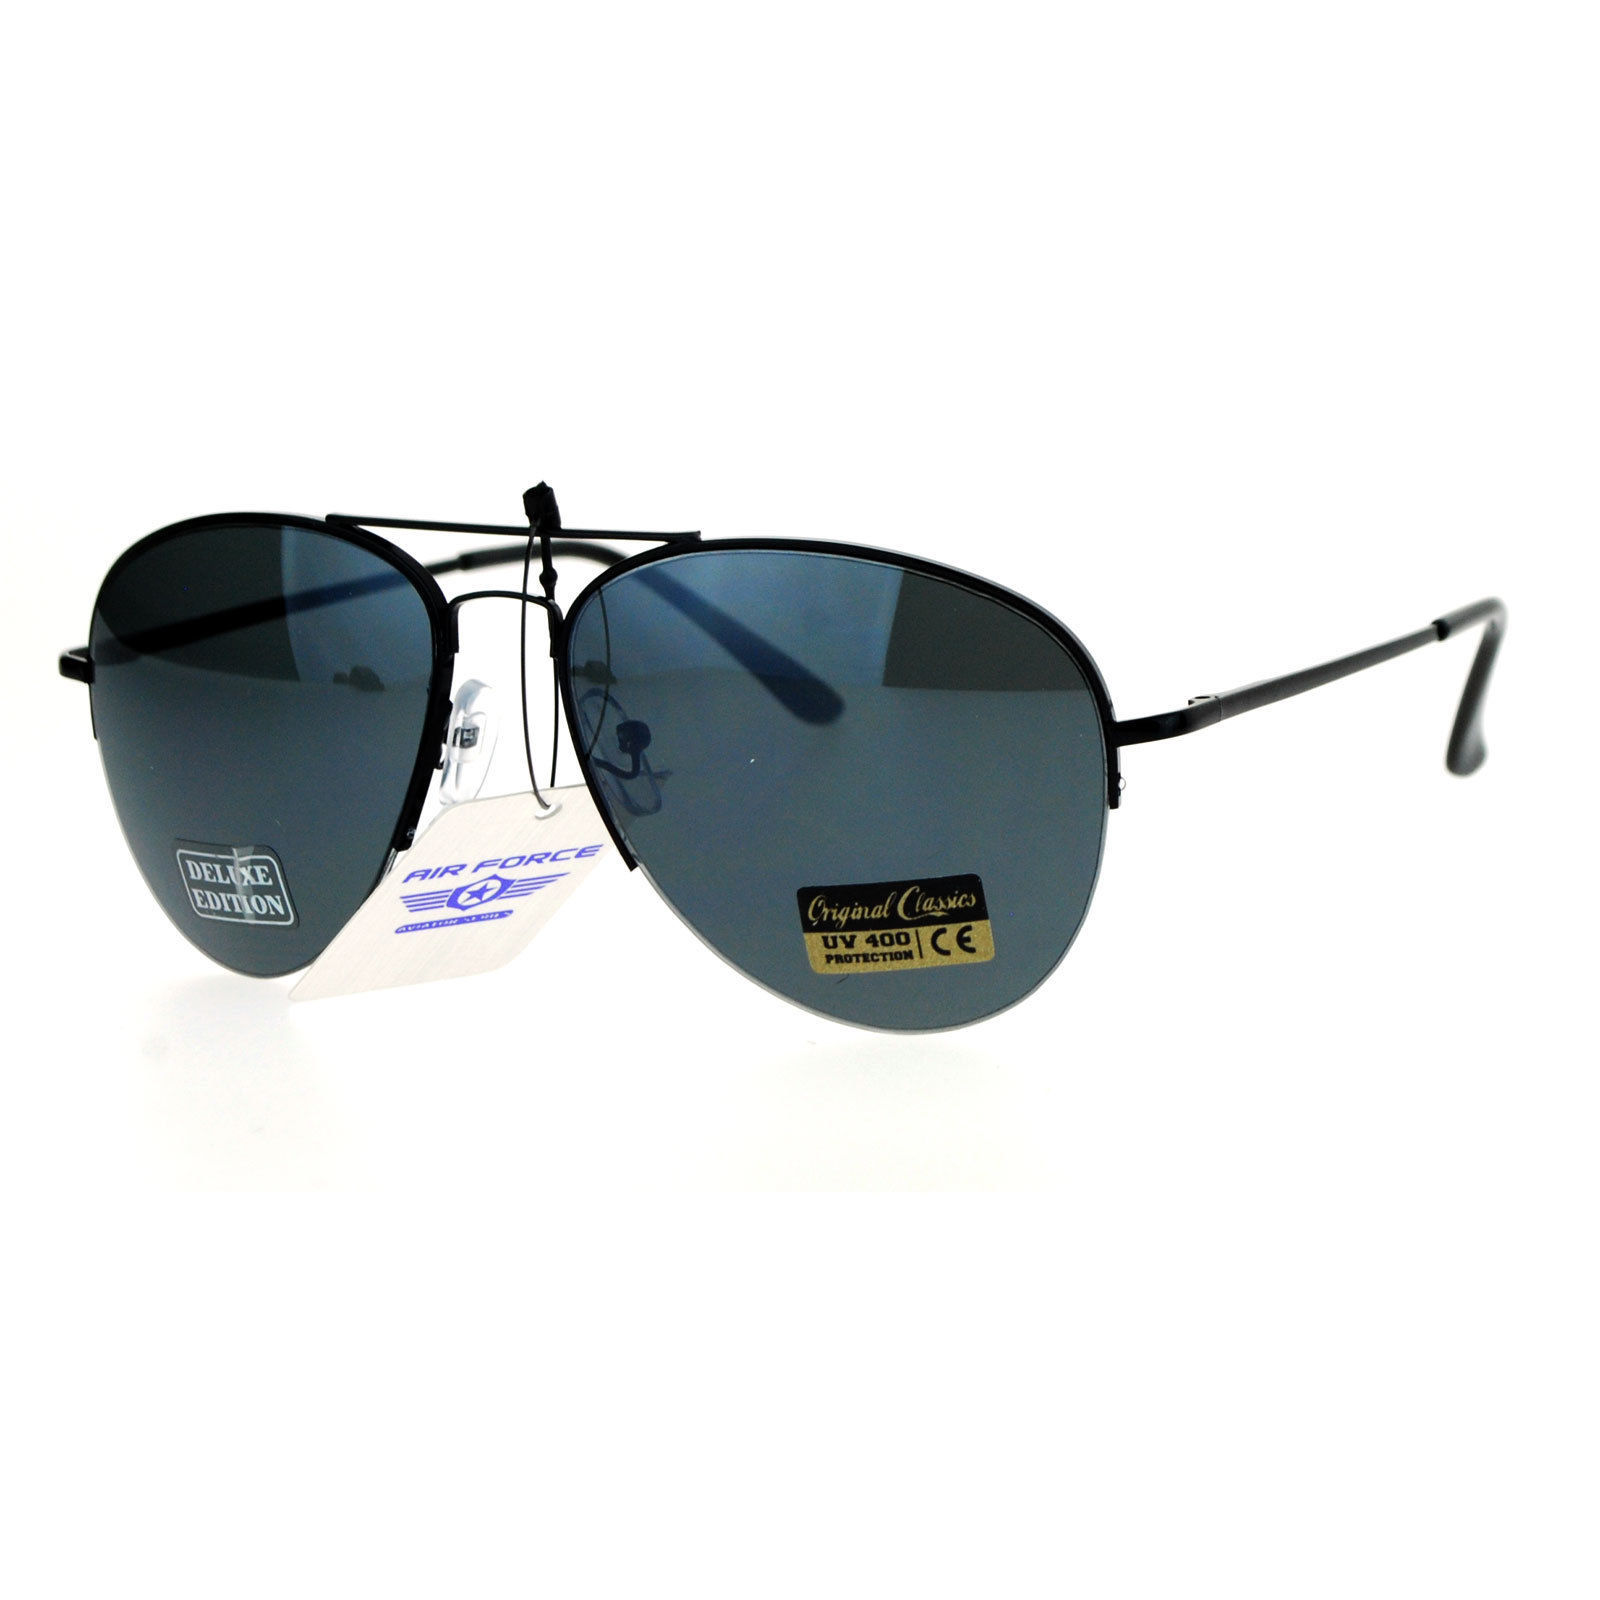 Air Force Aviator Sunglasses Unisex Half Rim Spring Hinge Classic Aviators